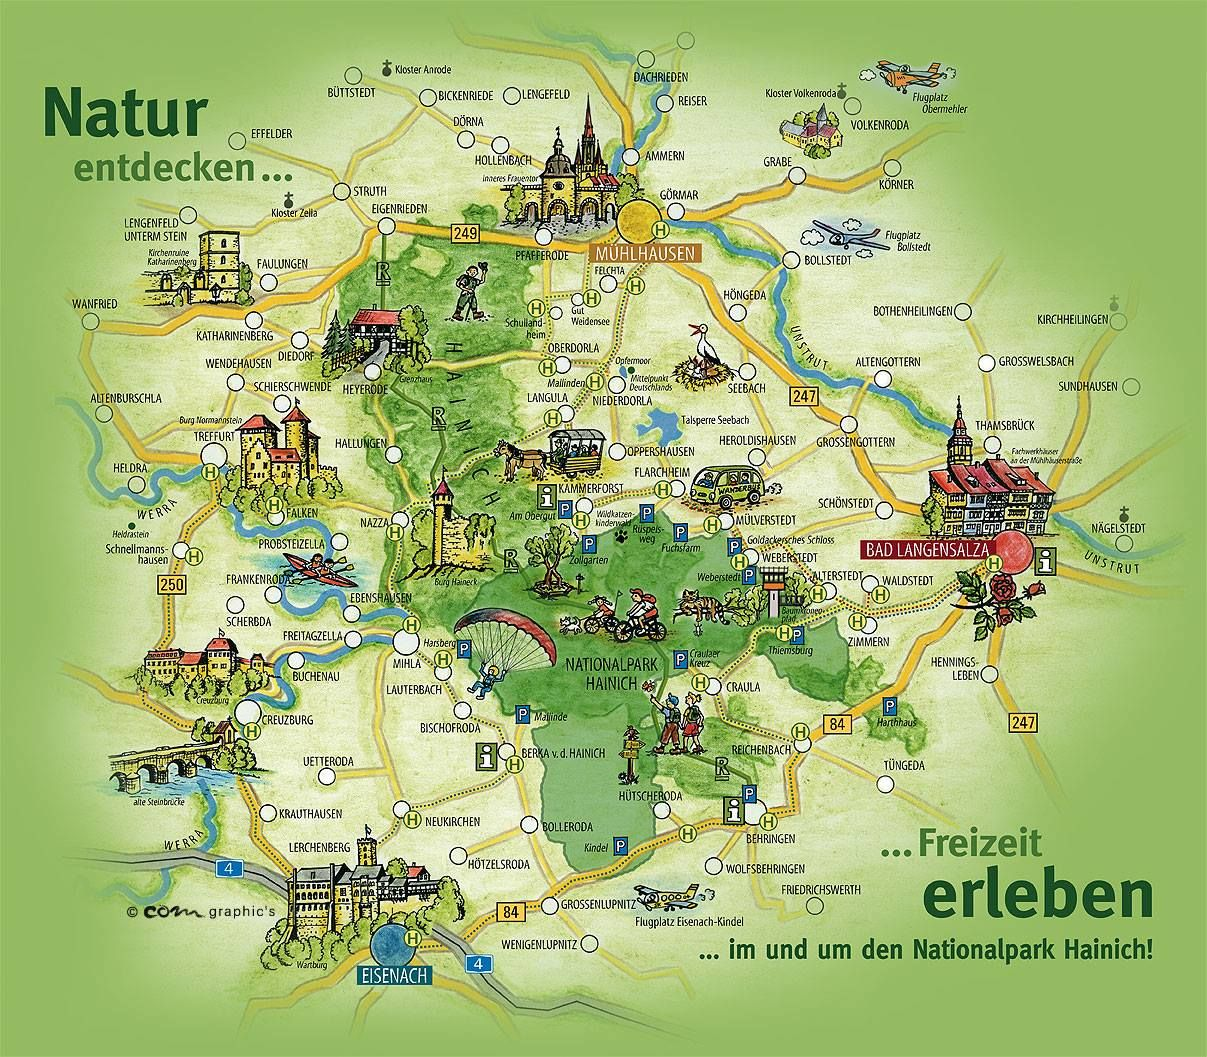 The Hainich National Park On 31 December Was Founded In 1997 Is